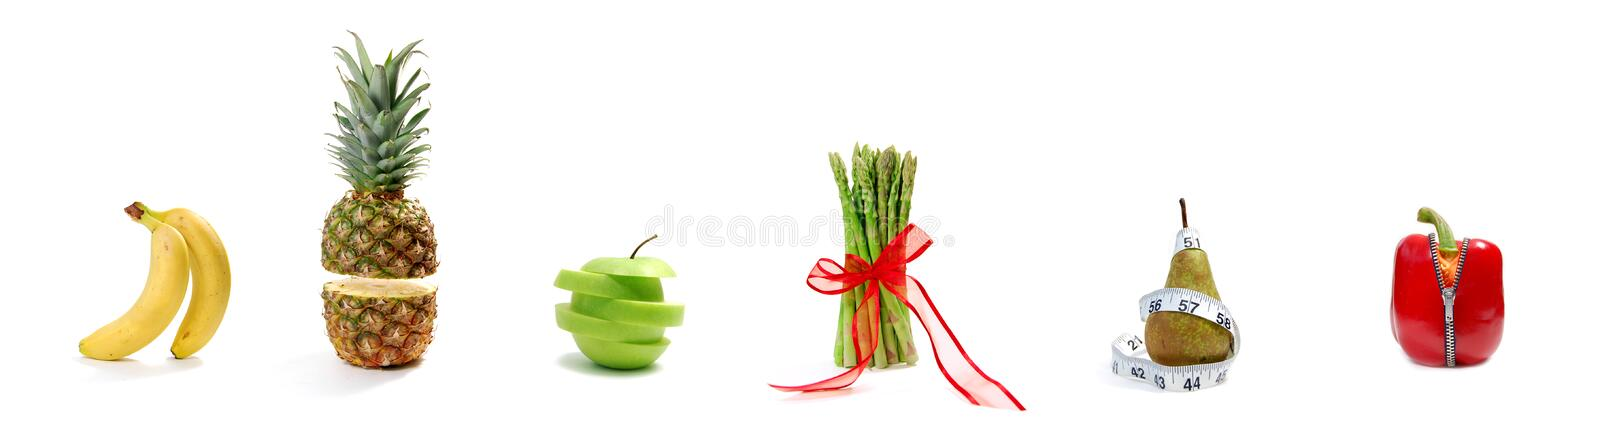 Fruit and vegetable parade. Row of fruits and vegetables including'standing' bananas, a pepper zip, and a floating cut pineapple; illustrating concepts relating stock image